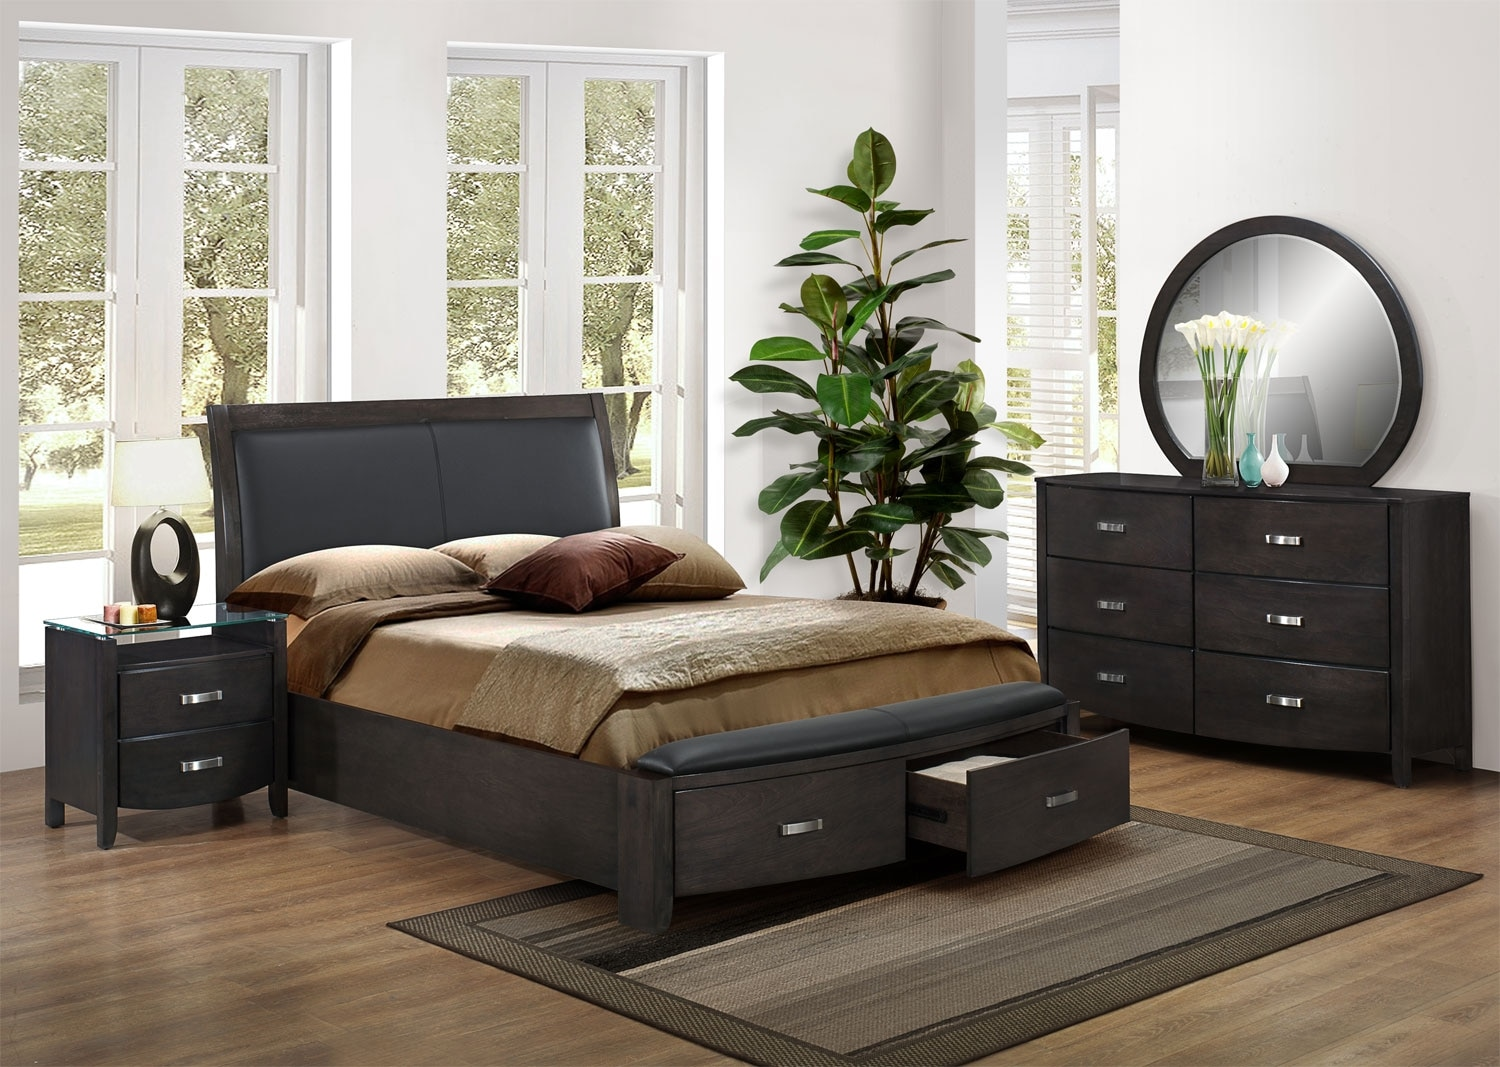 Bedroom Furniture - Cinema 5 Pc. Queen Bedroom Package - Charcoal